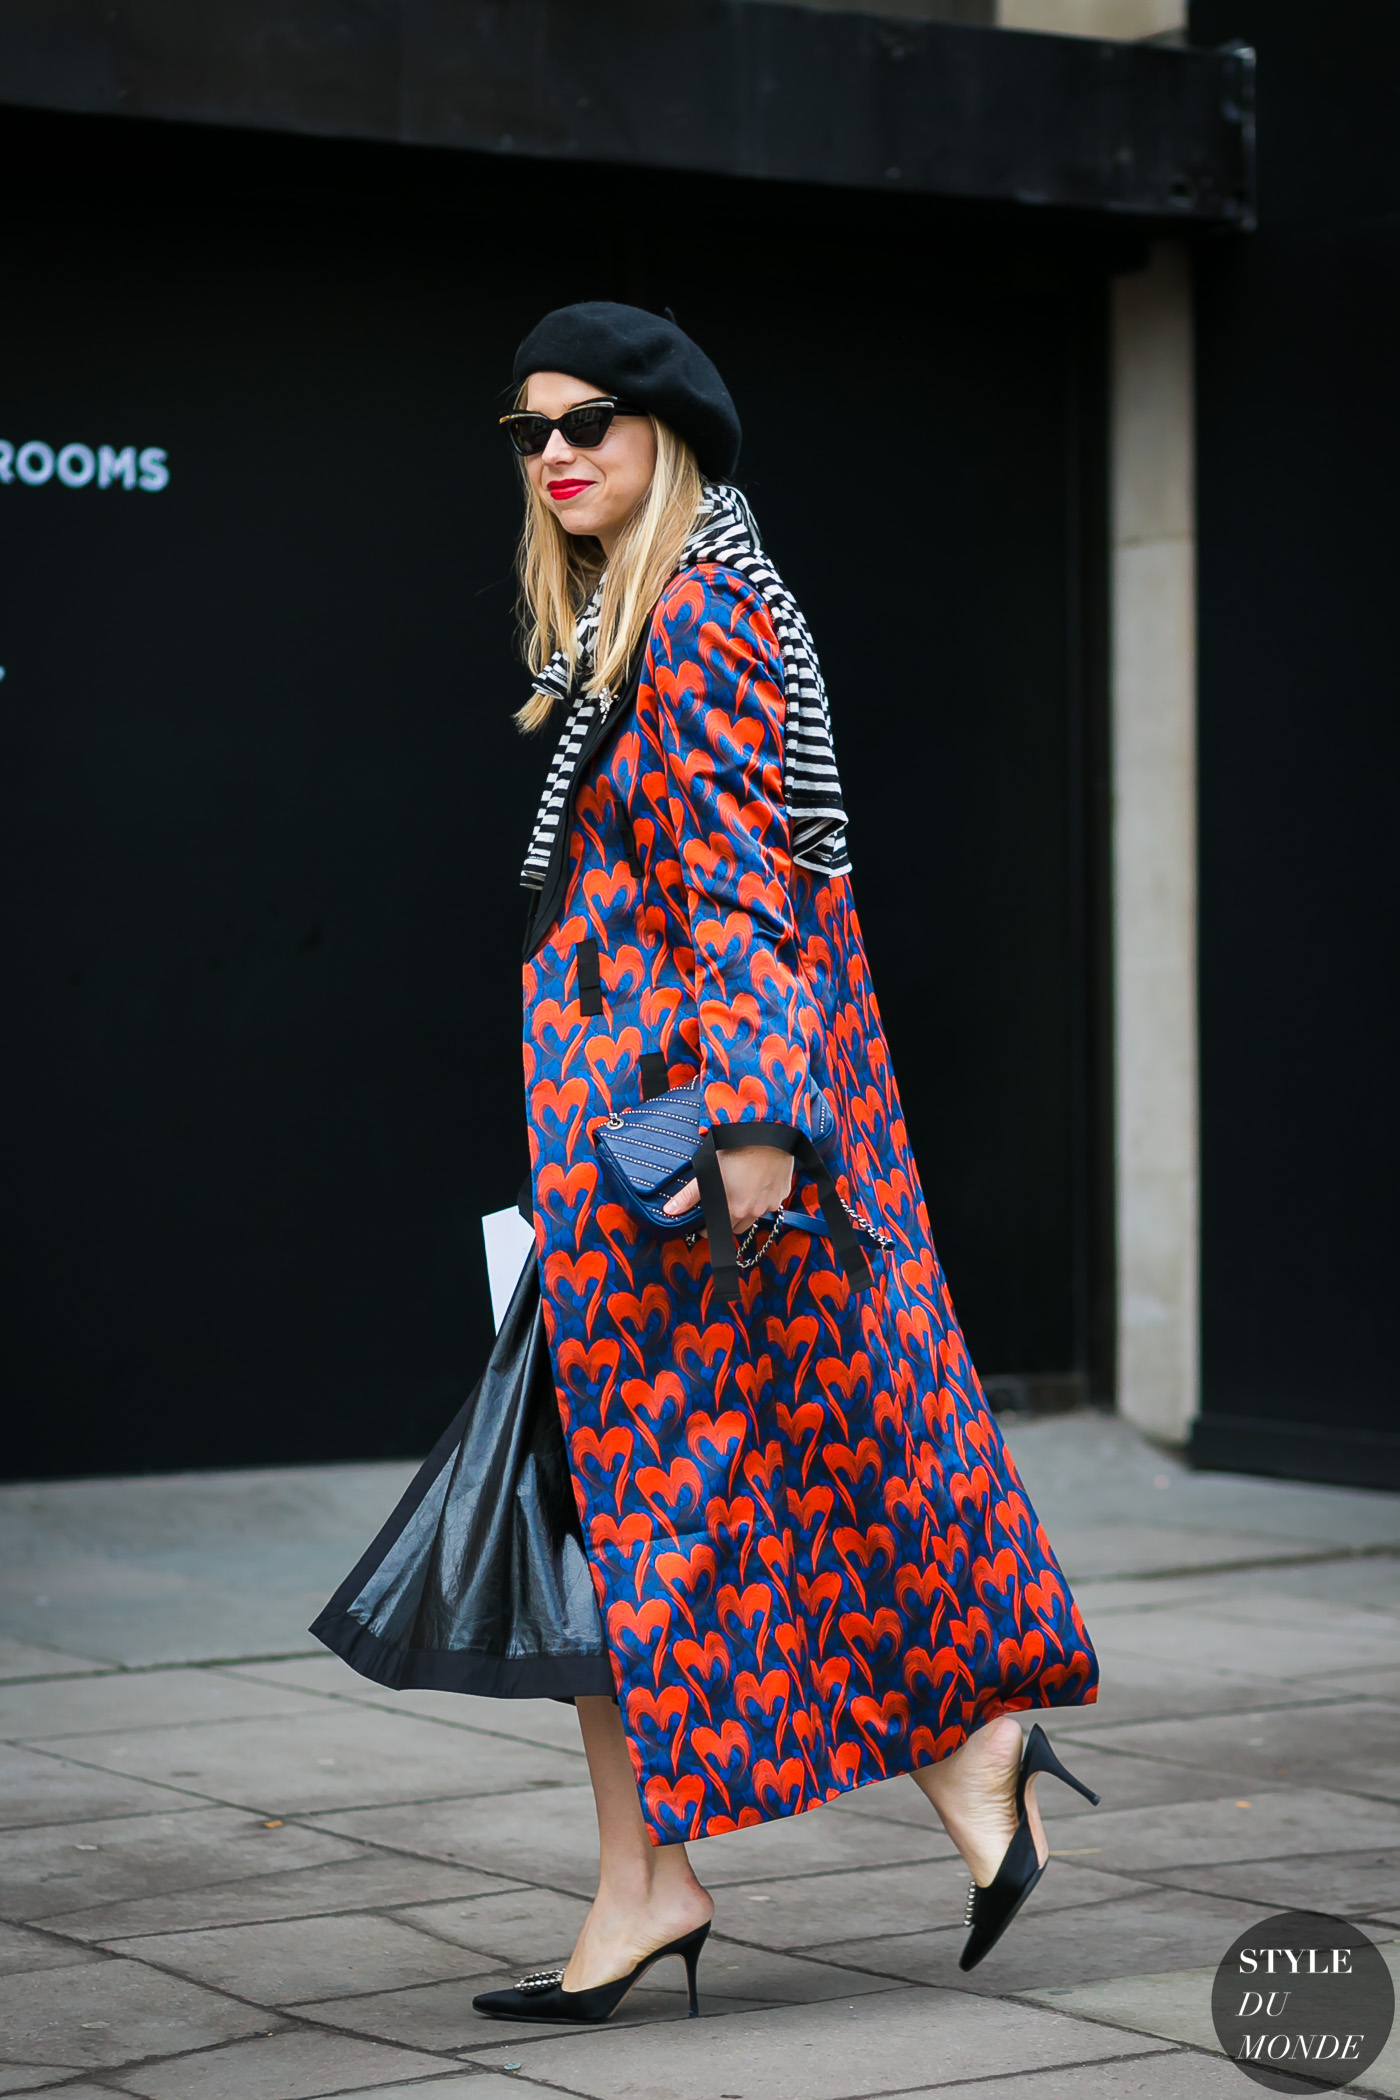 Chloe King by STYLEDUMONDE Street Style Fashion Photography